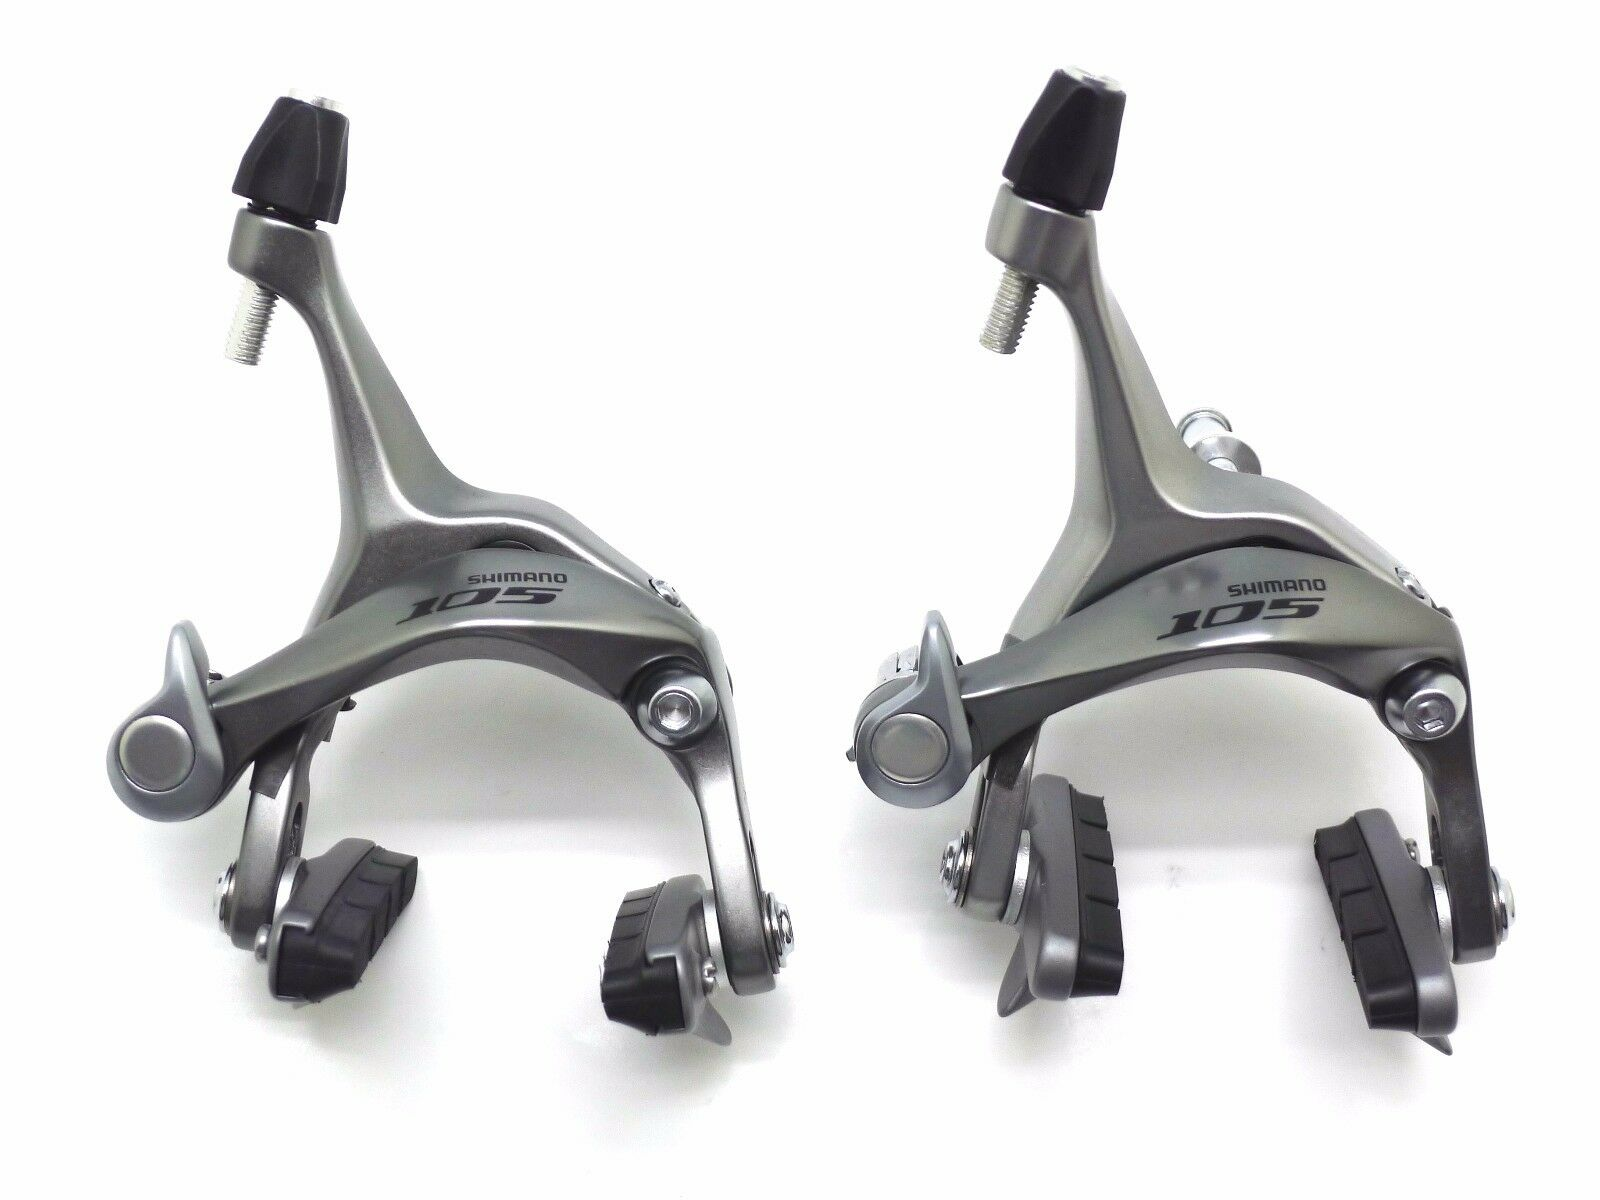 Shimano  105 BR-5700 Front & Rear Brake Calipers  save up to 70% discount